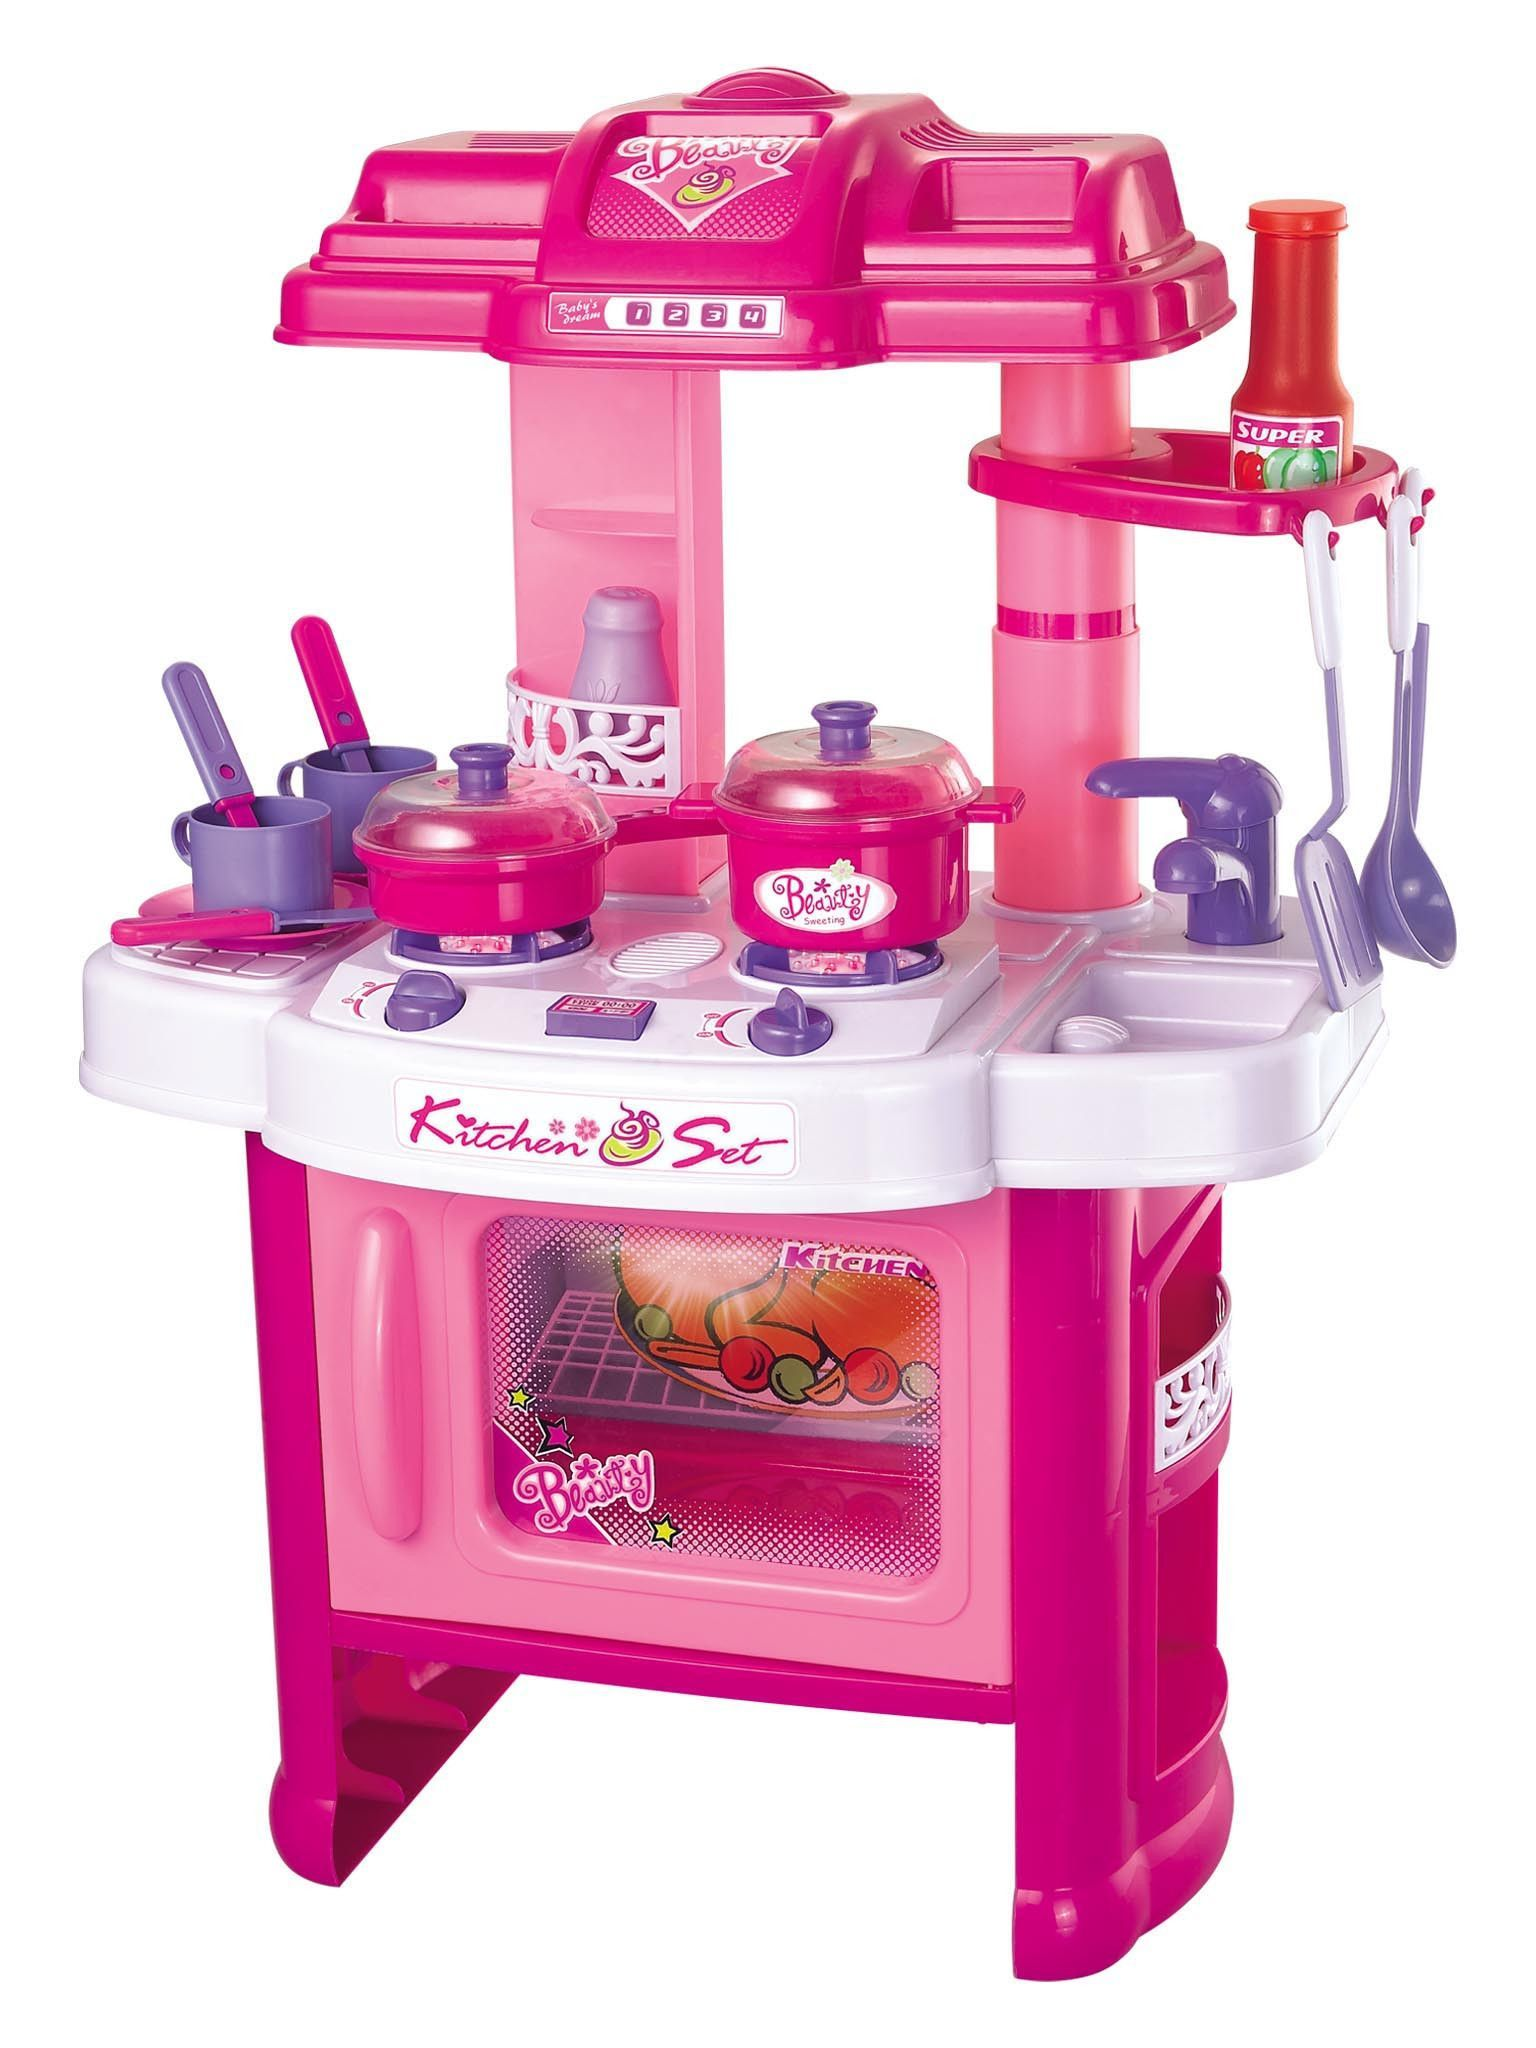 Plastic Play Kitchen berry toys br008-26 fun cooking plastic play kitchen - pink | products